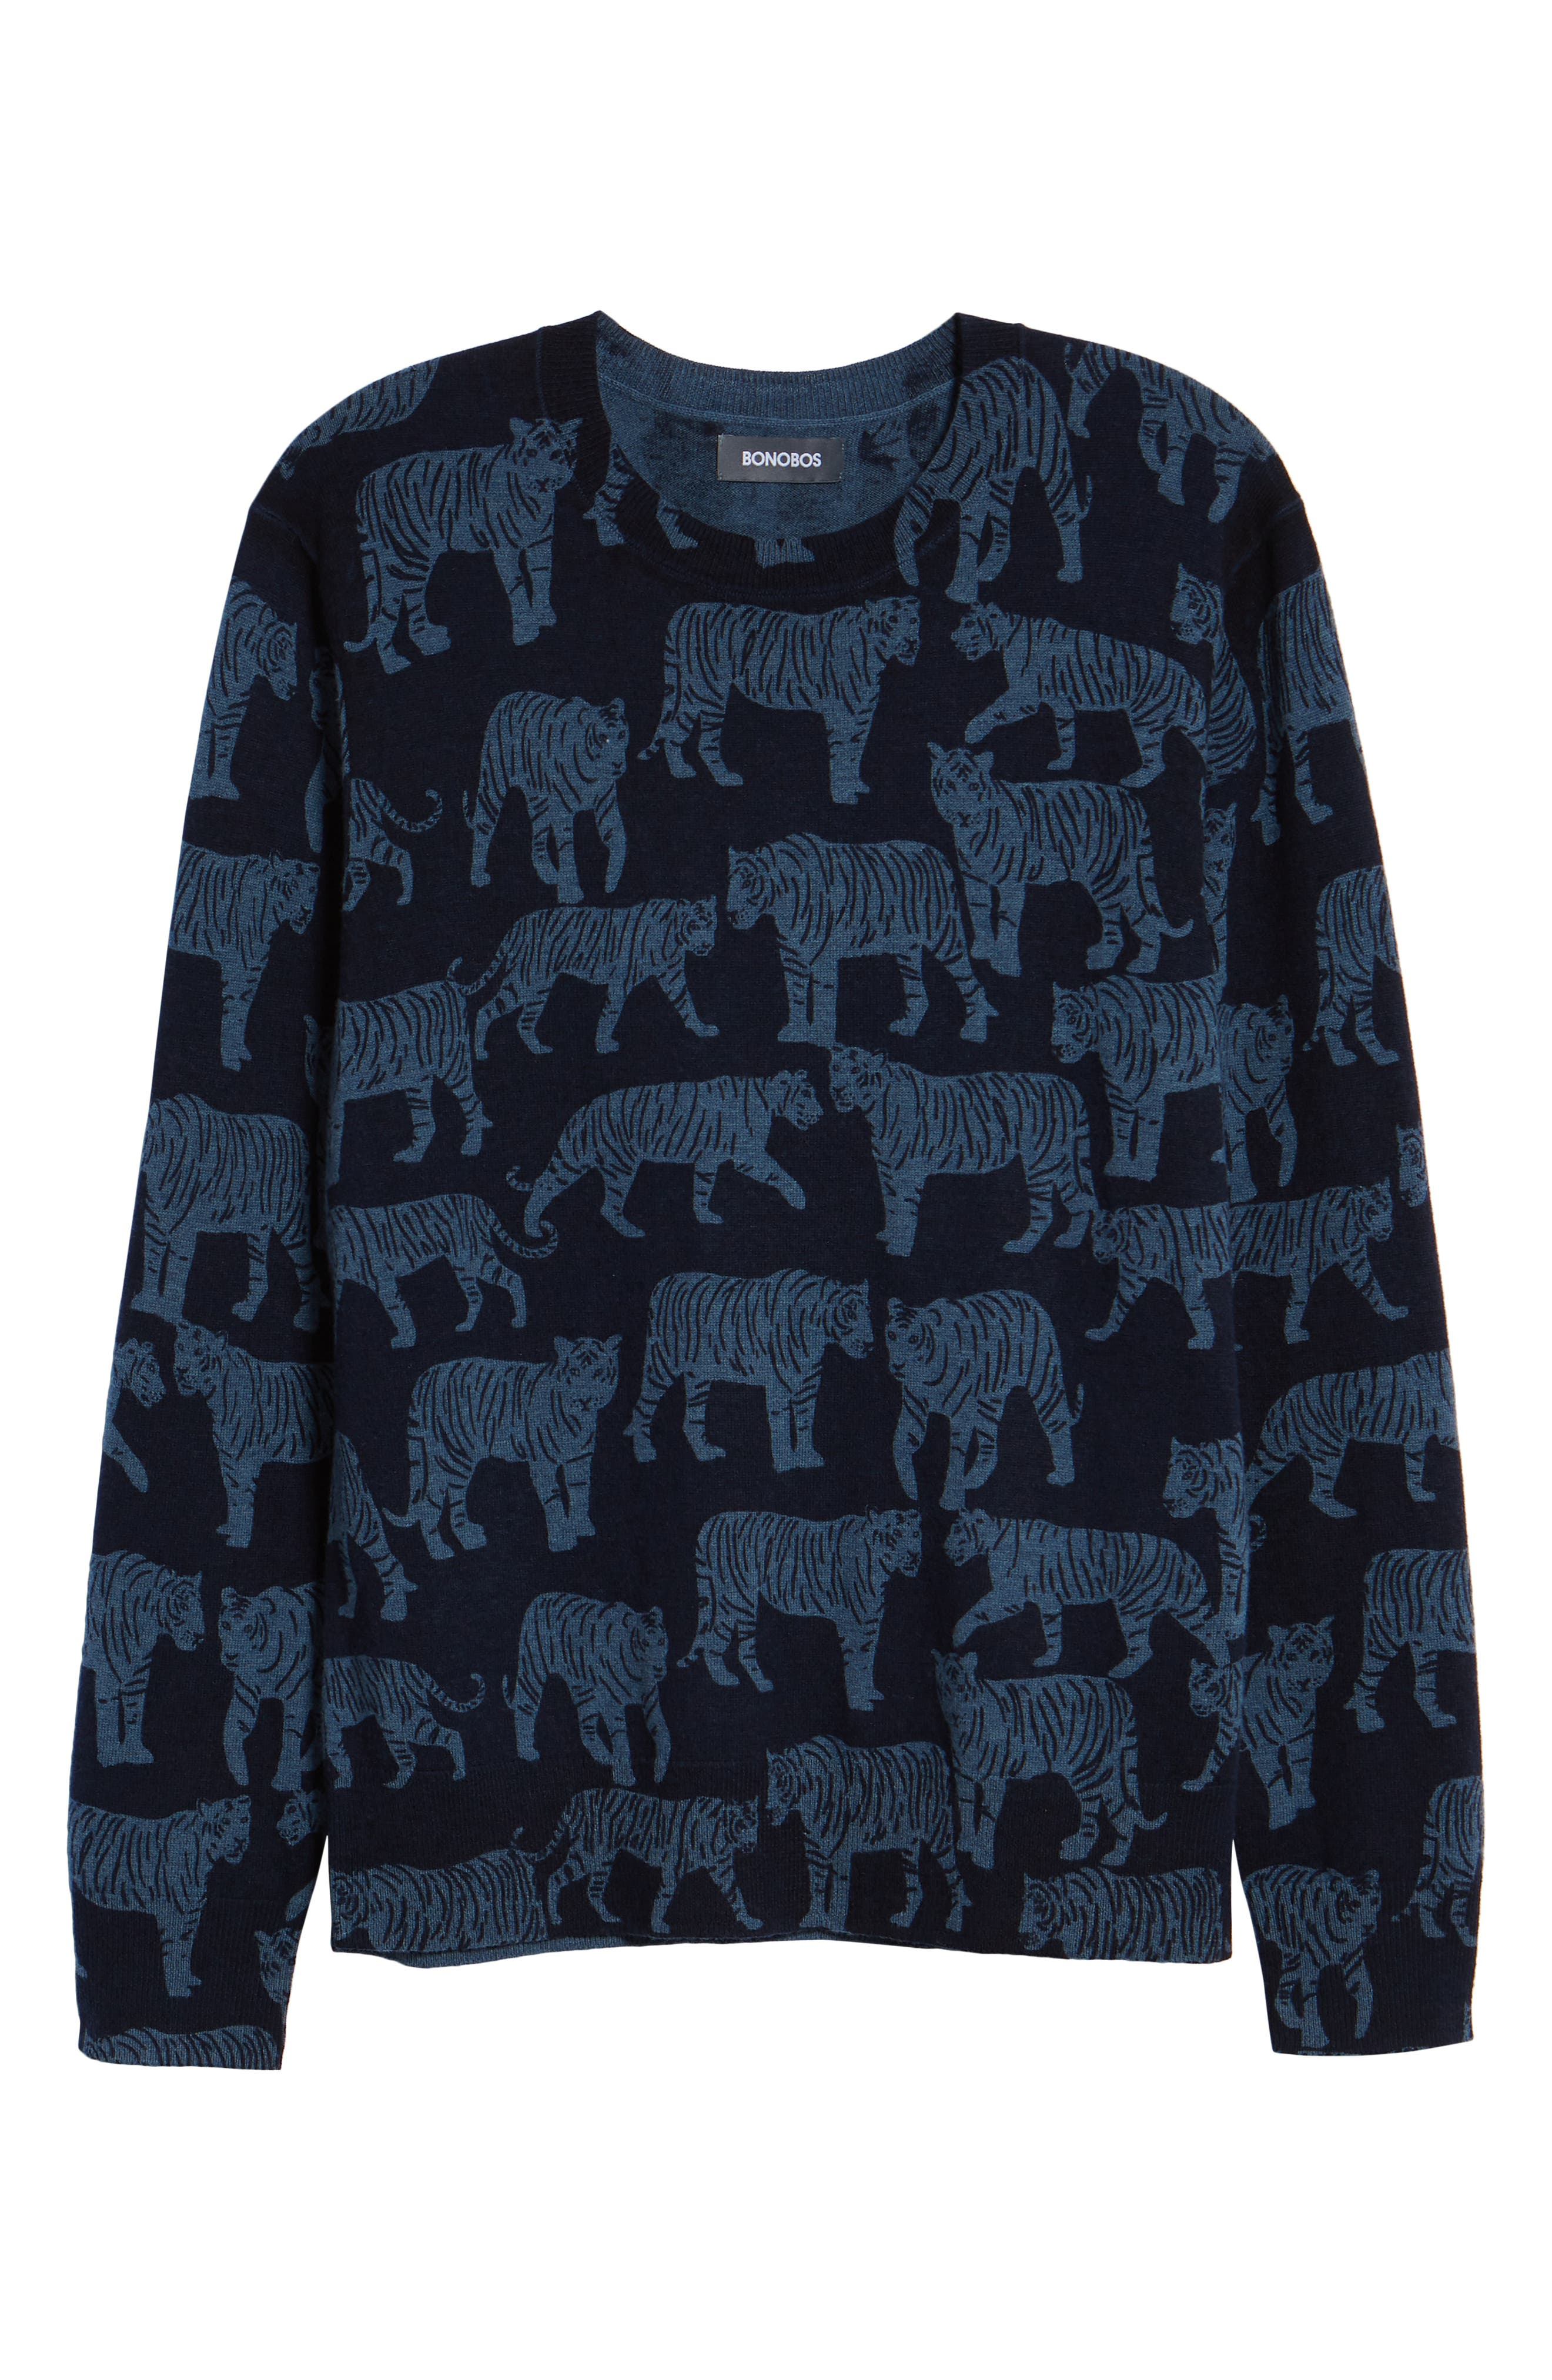 Slim Fit Tiger Print Sweater,                             Alternate thumbnail 6, color,                             NIGHTSHADOW/ FADED NAVY TIGRE